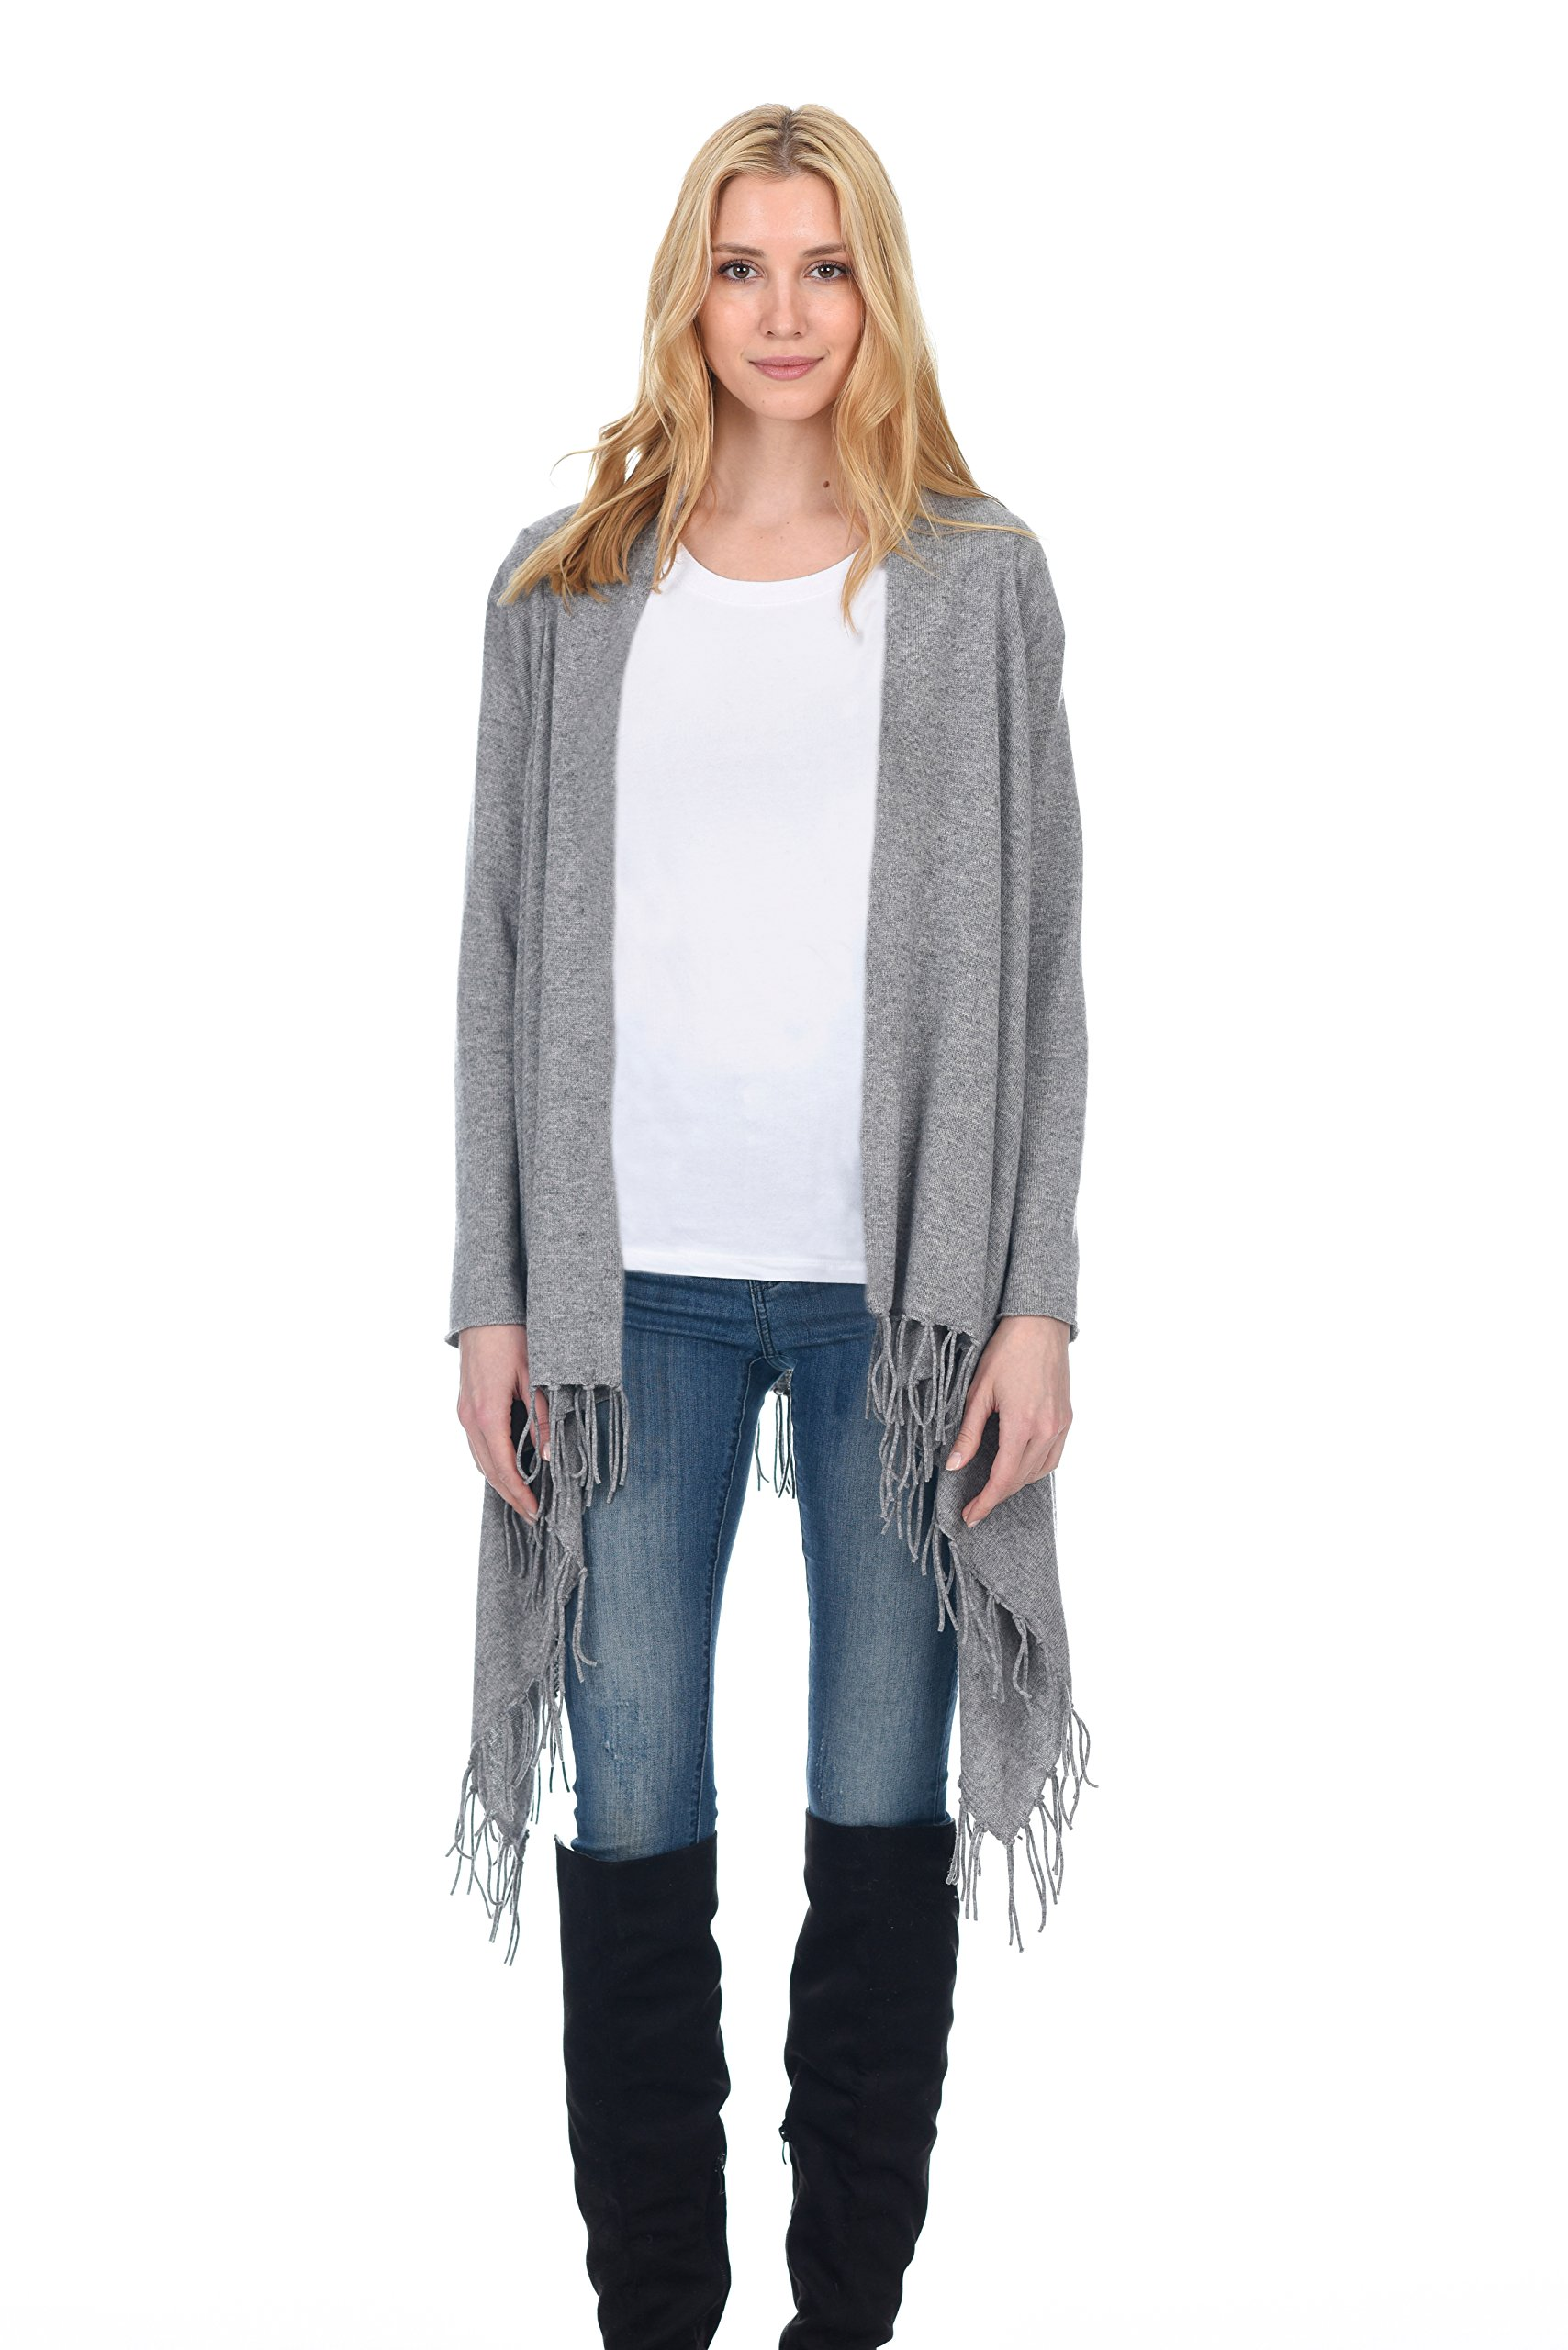 State Fusio Women's Wool Cashmere Casual Knitted Convertible Fringed Cardigan Shawl